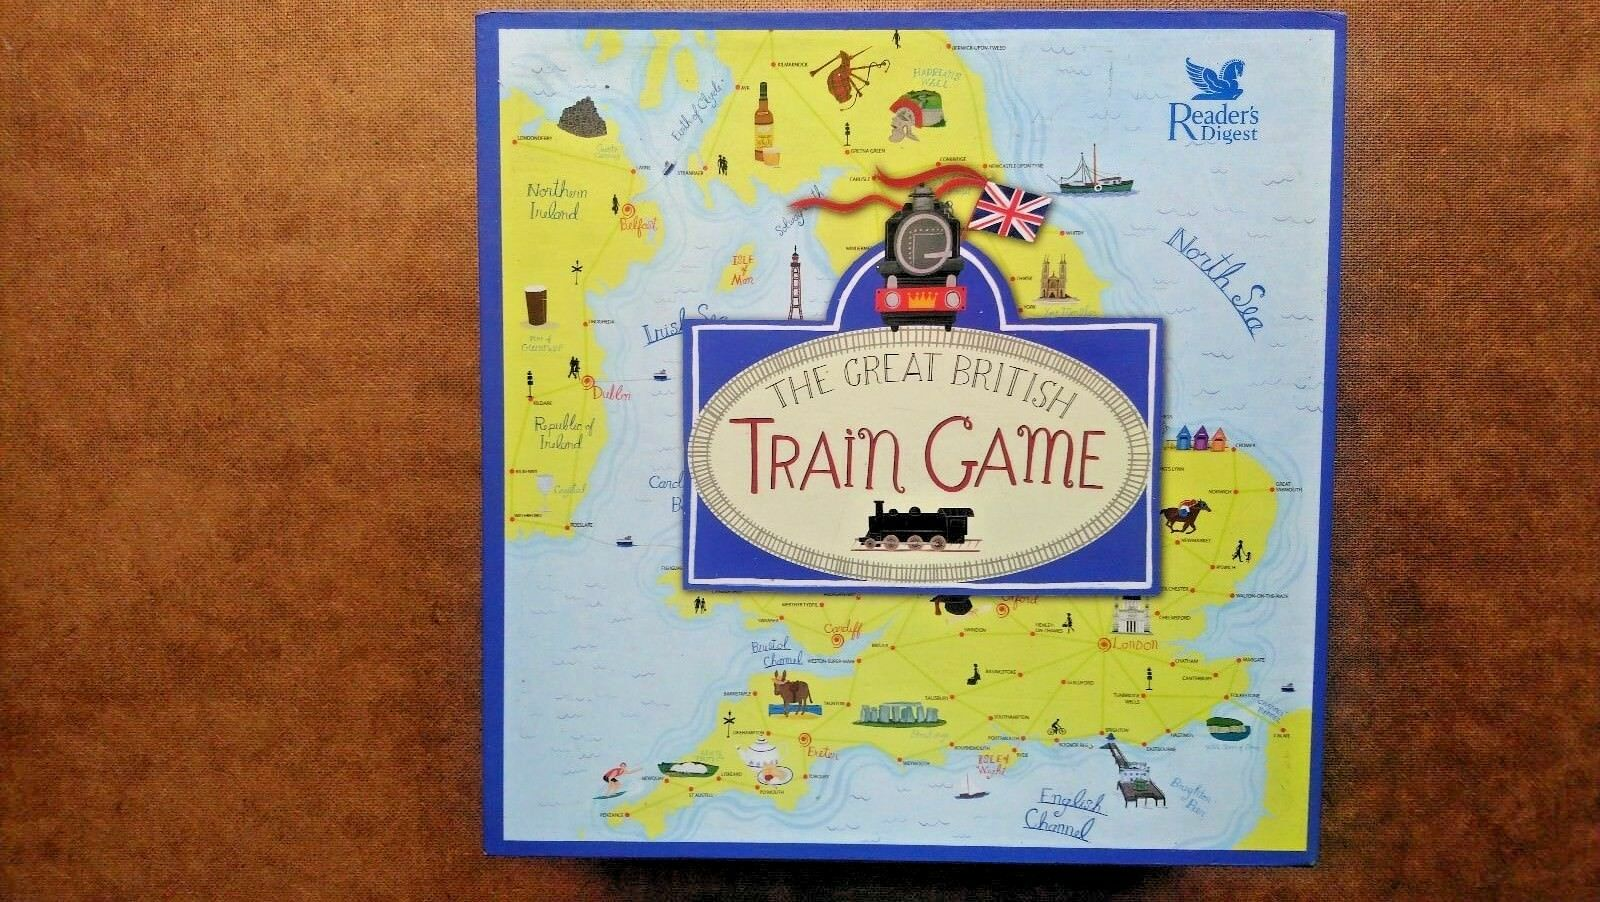 The Great British Train Game By Readers Digest (2008)